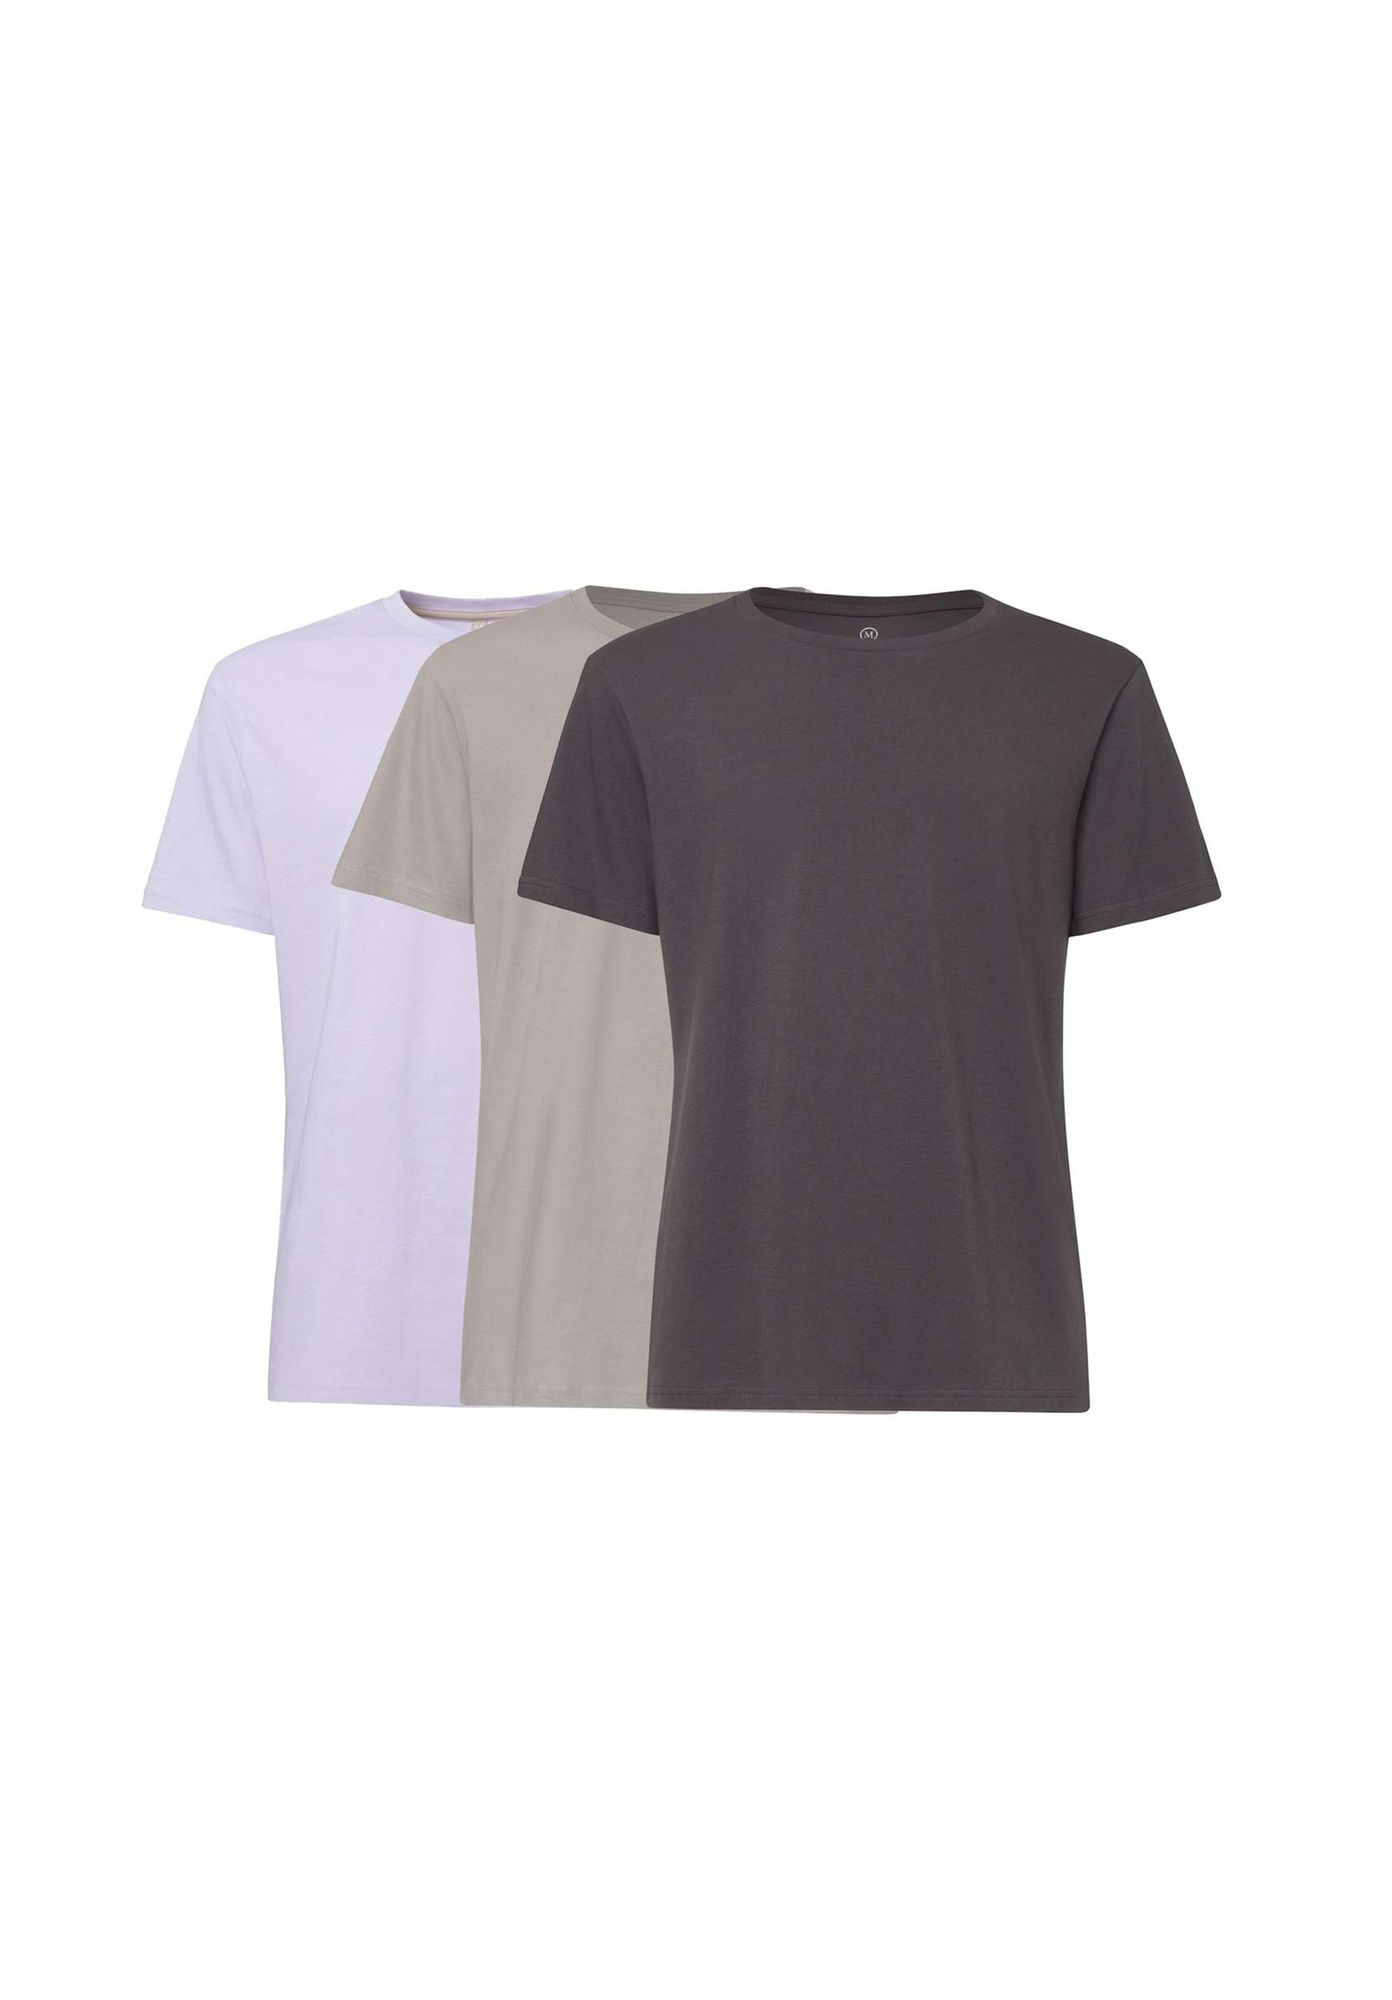 3 Pack TT02 T-Shirt Helium/Dust/Anthracite